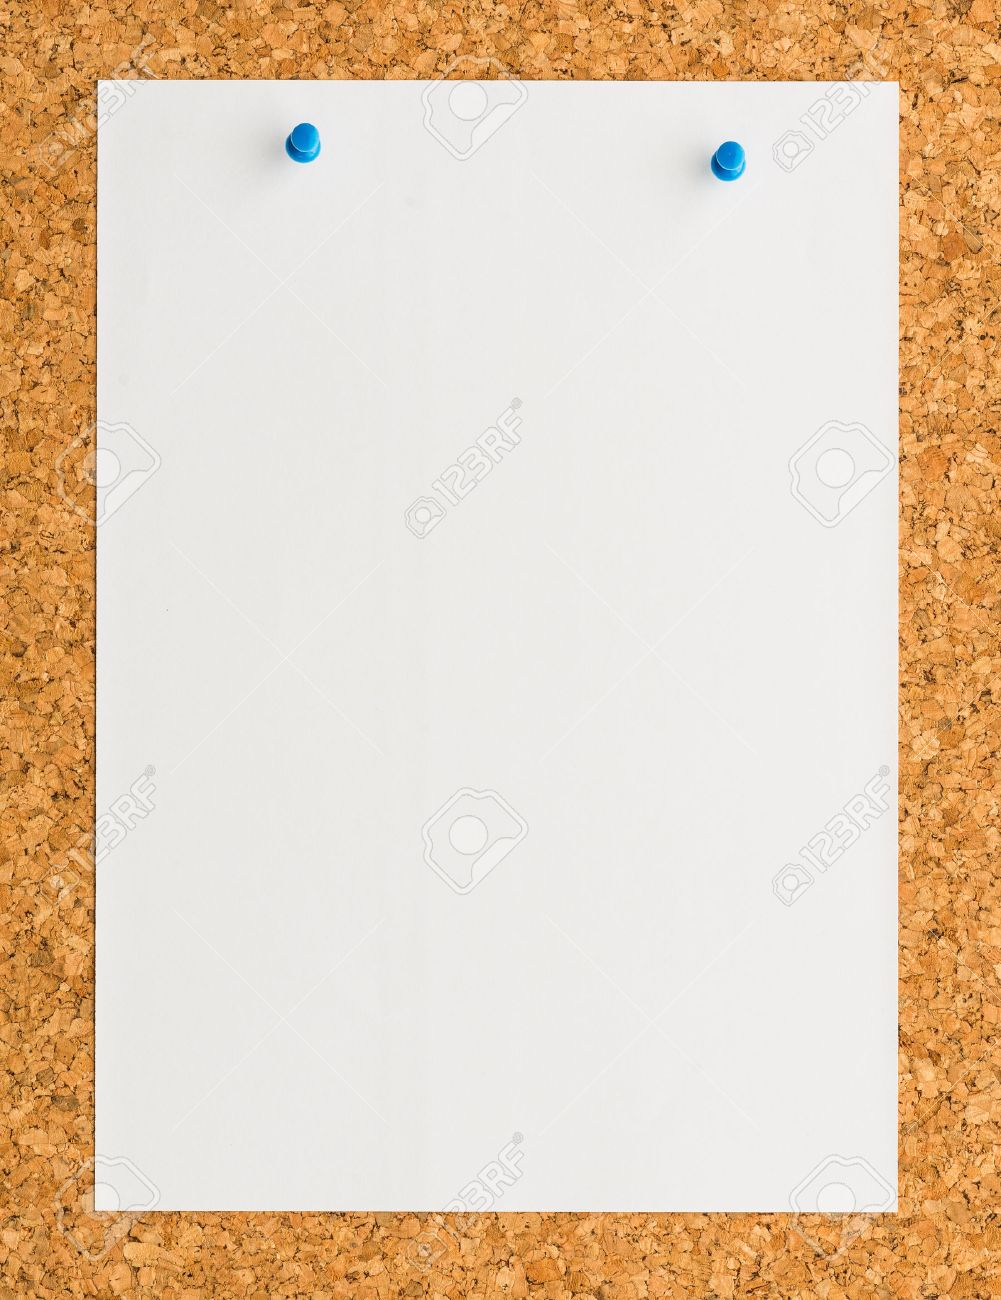 close up blank white paper note sheet blue push pin on cork stock photo close up blank white paper note sheet blue push pin on cork board background for write memo